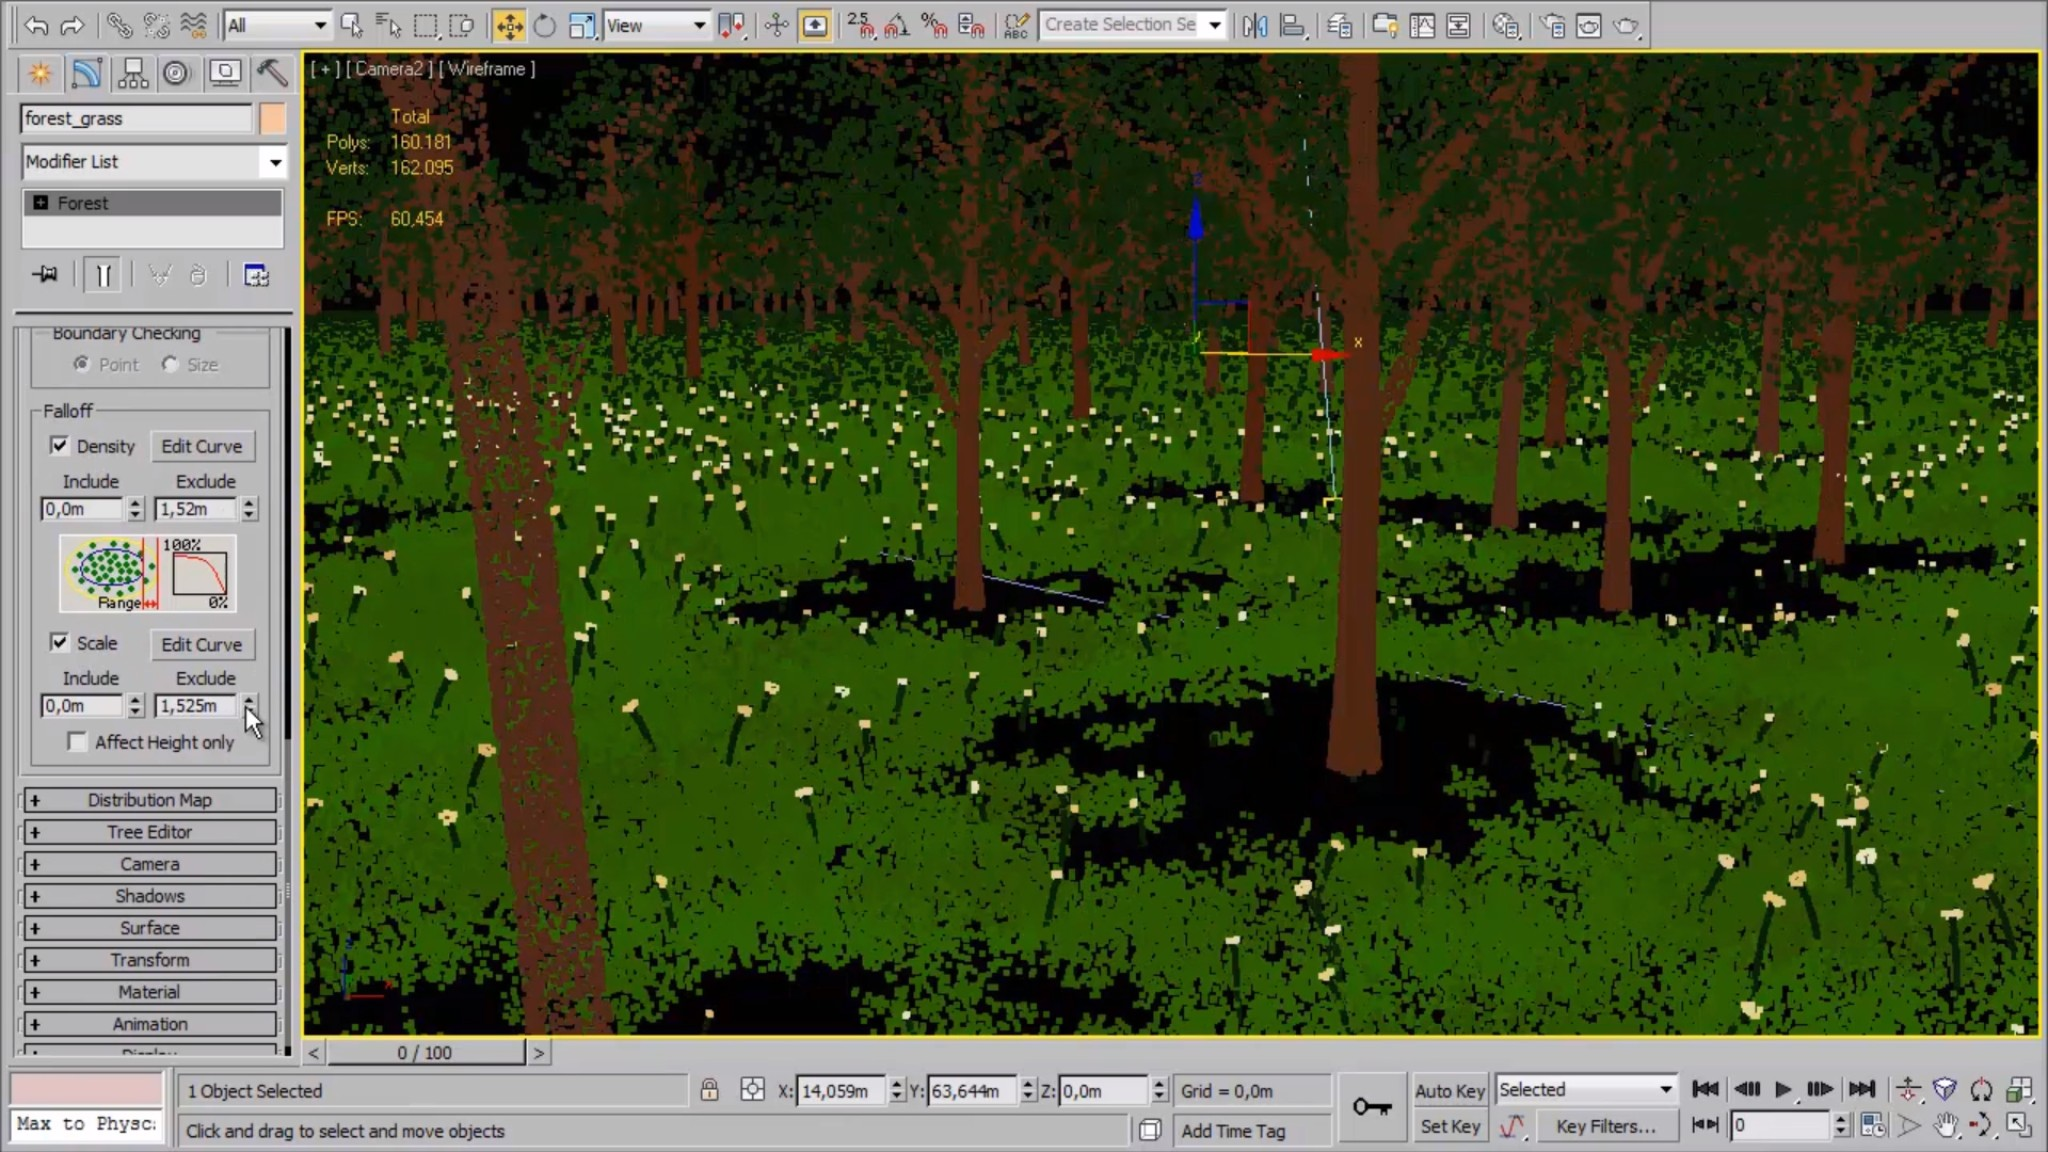 Forest Pack Pro 3 3 For 3DS Max - xsonartrendy